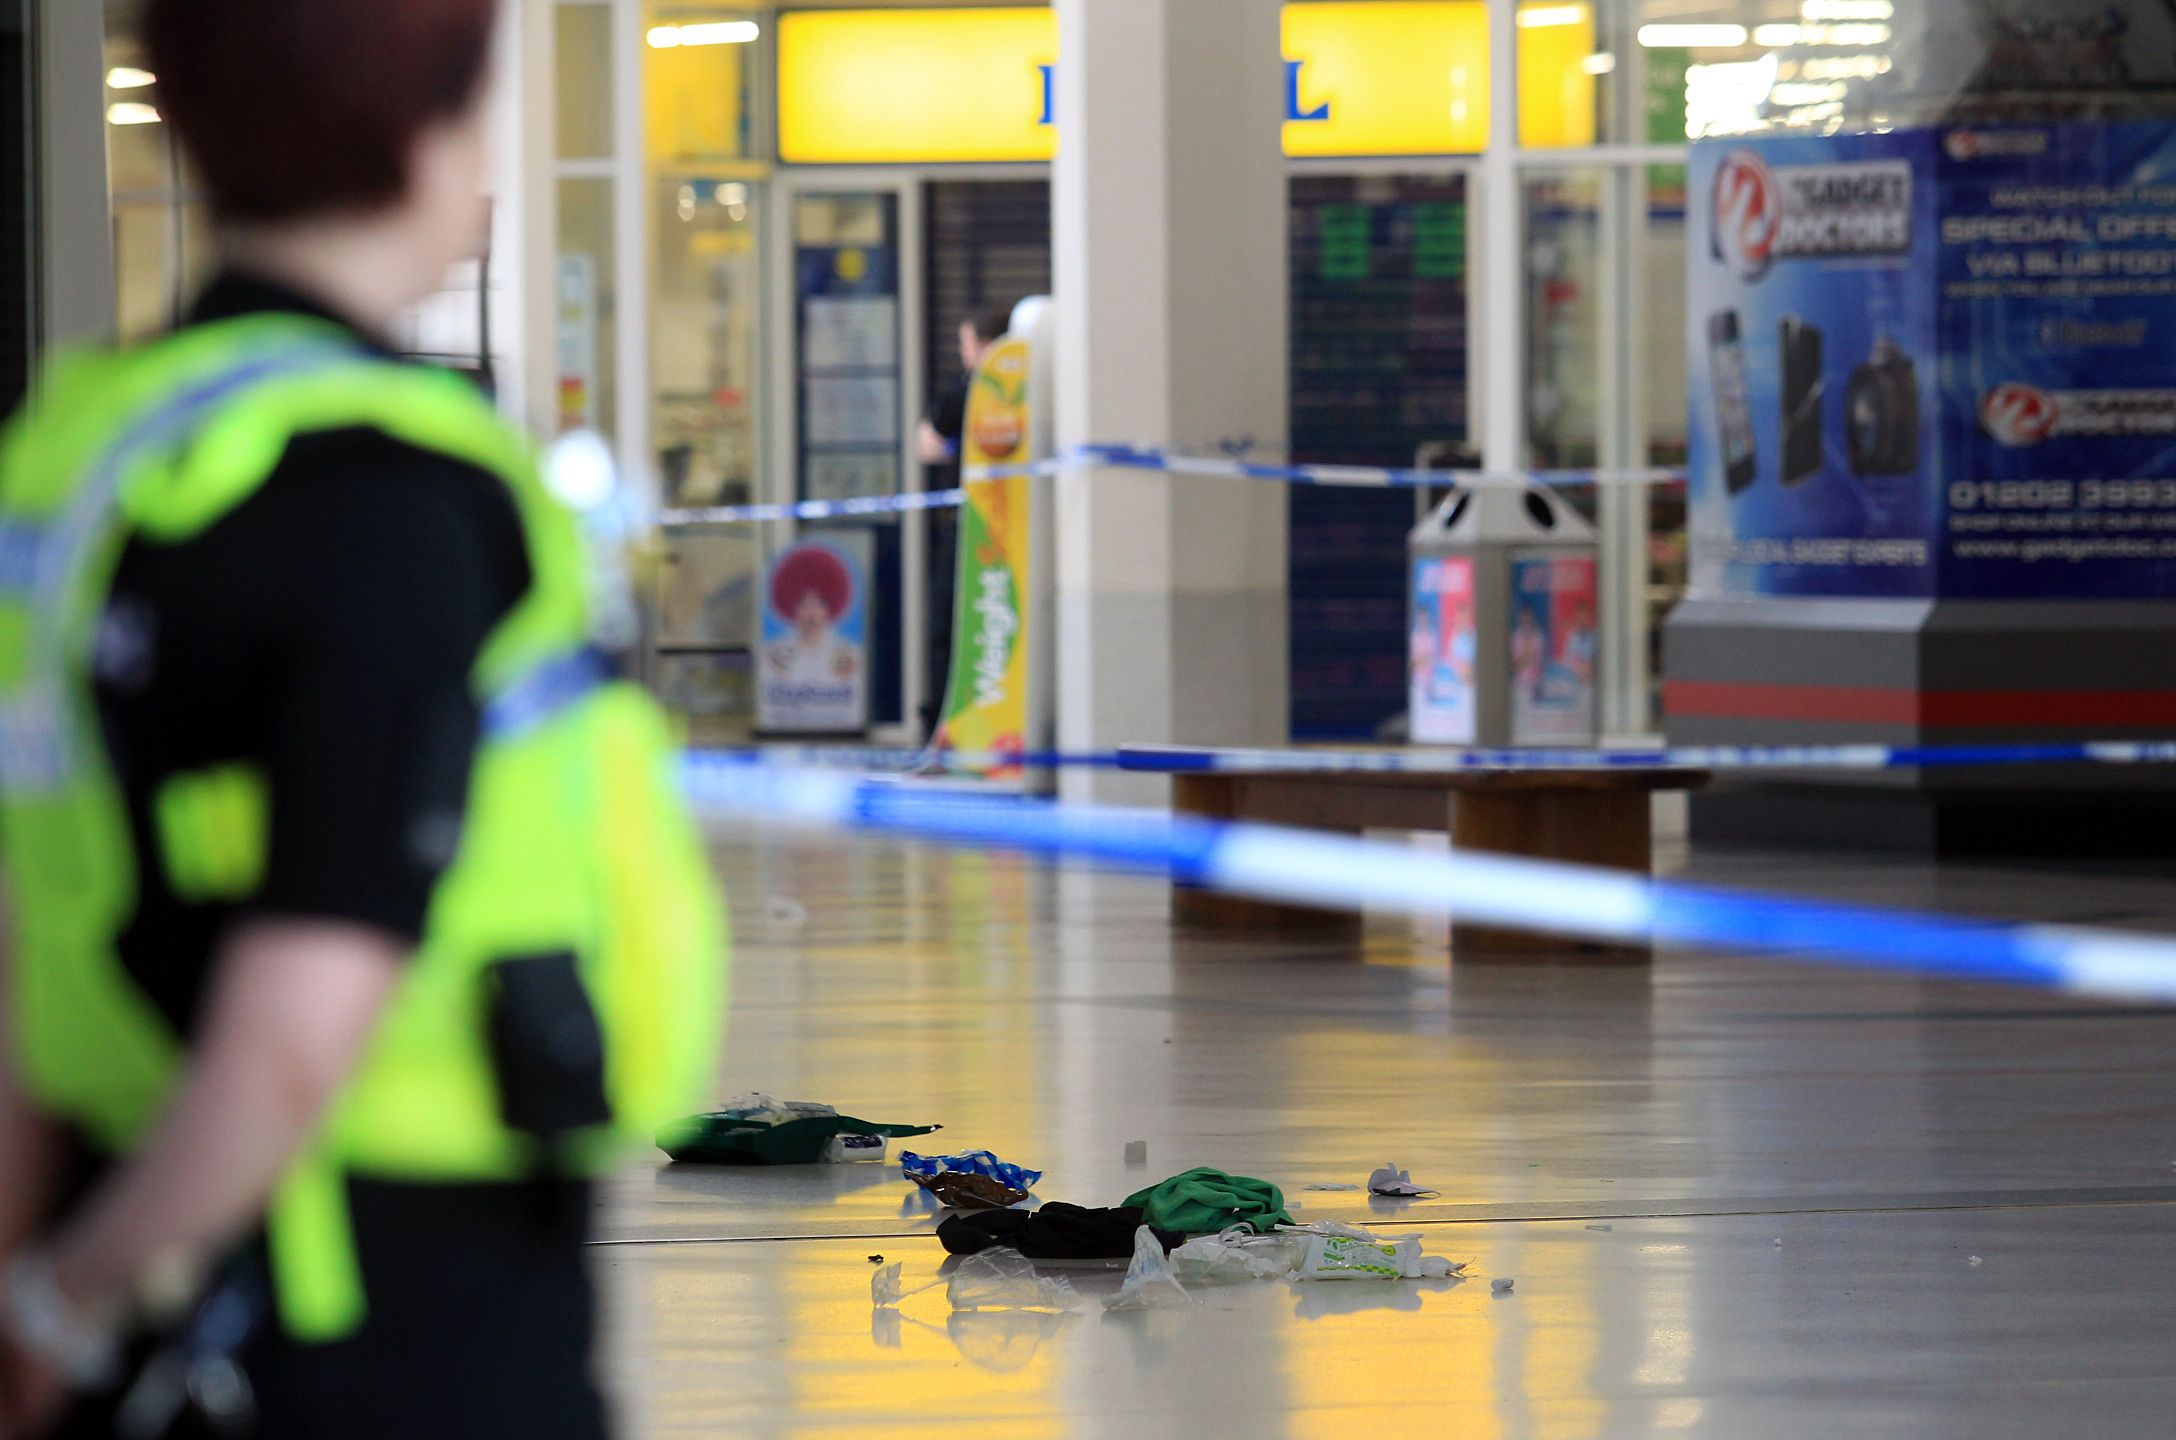 Man in court over Sovereign Centre stabbing